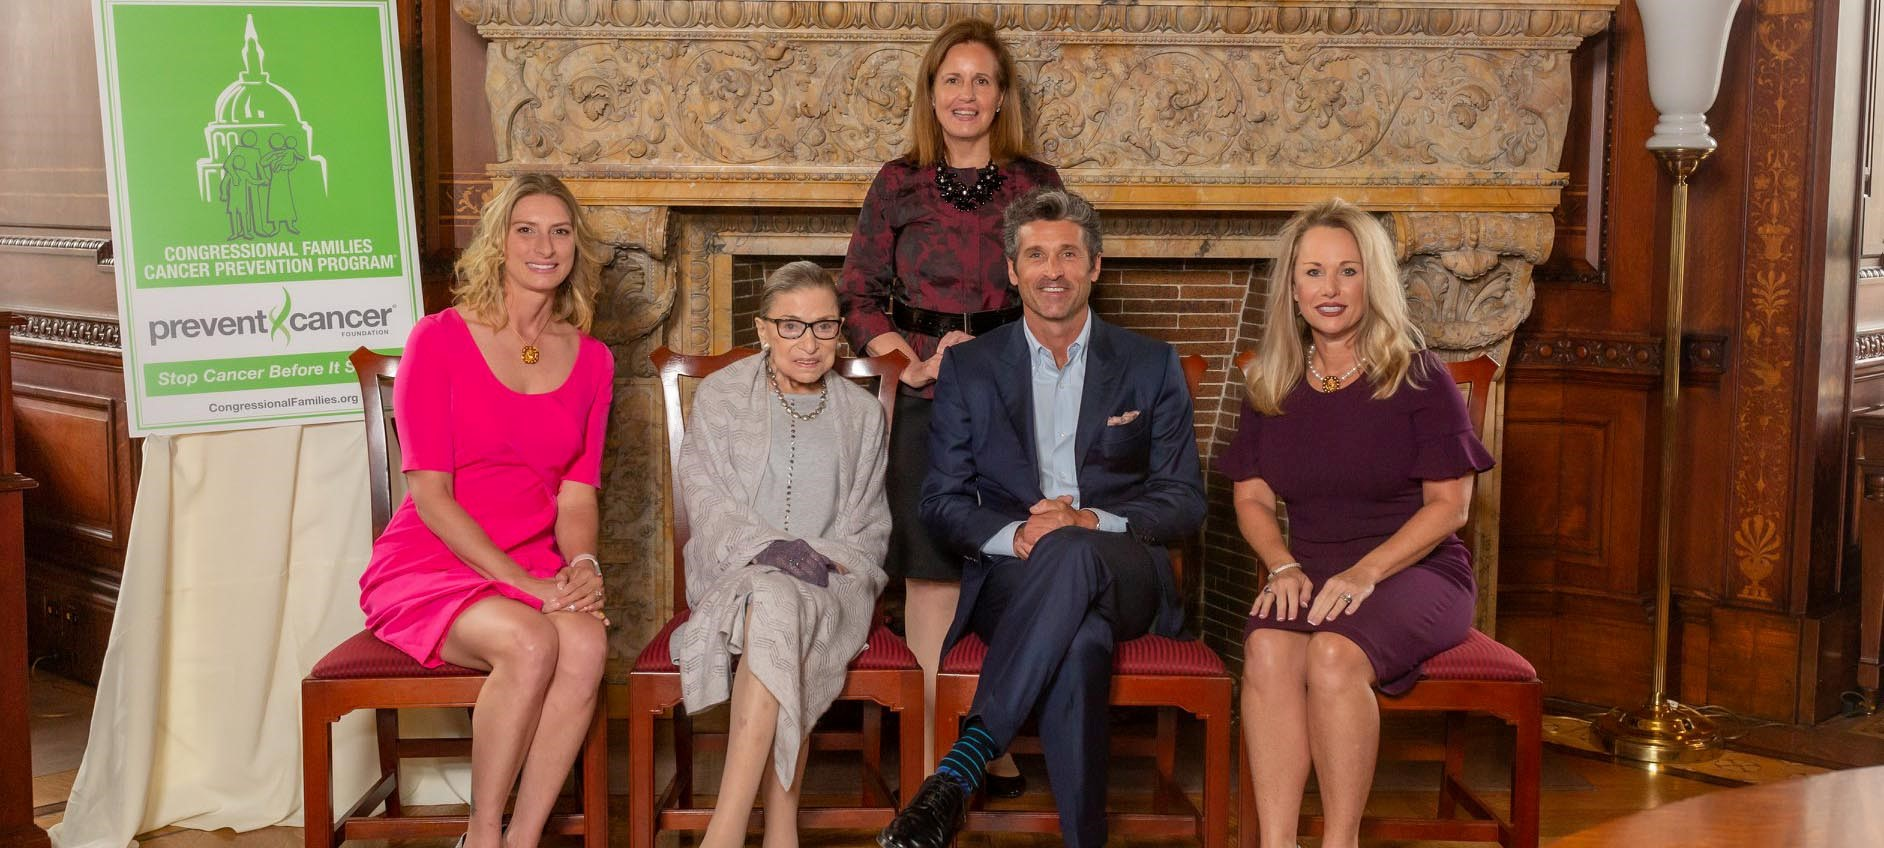 27th Annual Congressional Families Luncheon honors Ruth Bader Ginsburg, Patrick Dempsey, Amanda Soto and LeeAnn Johnson